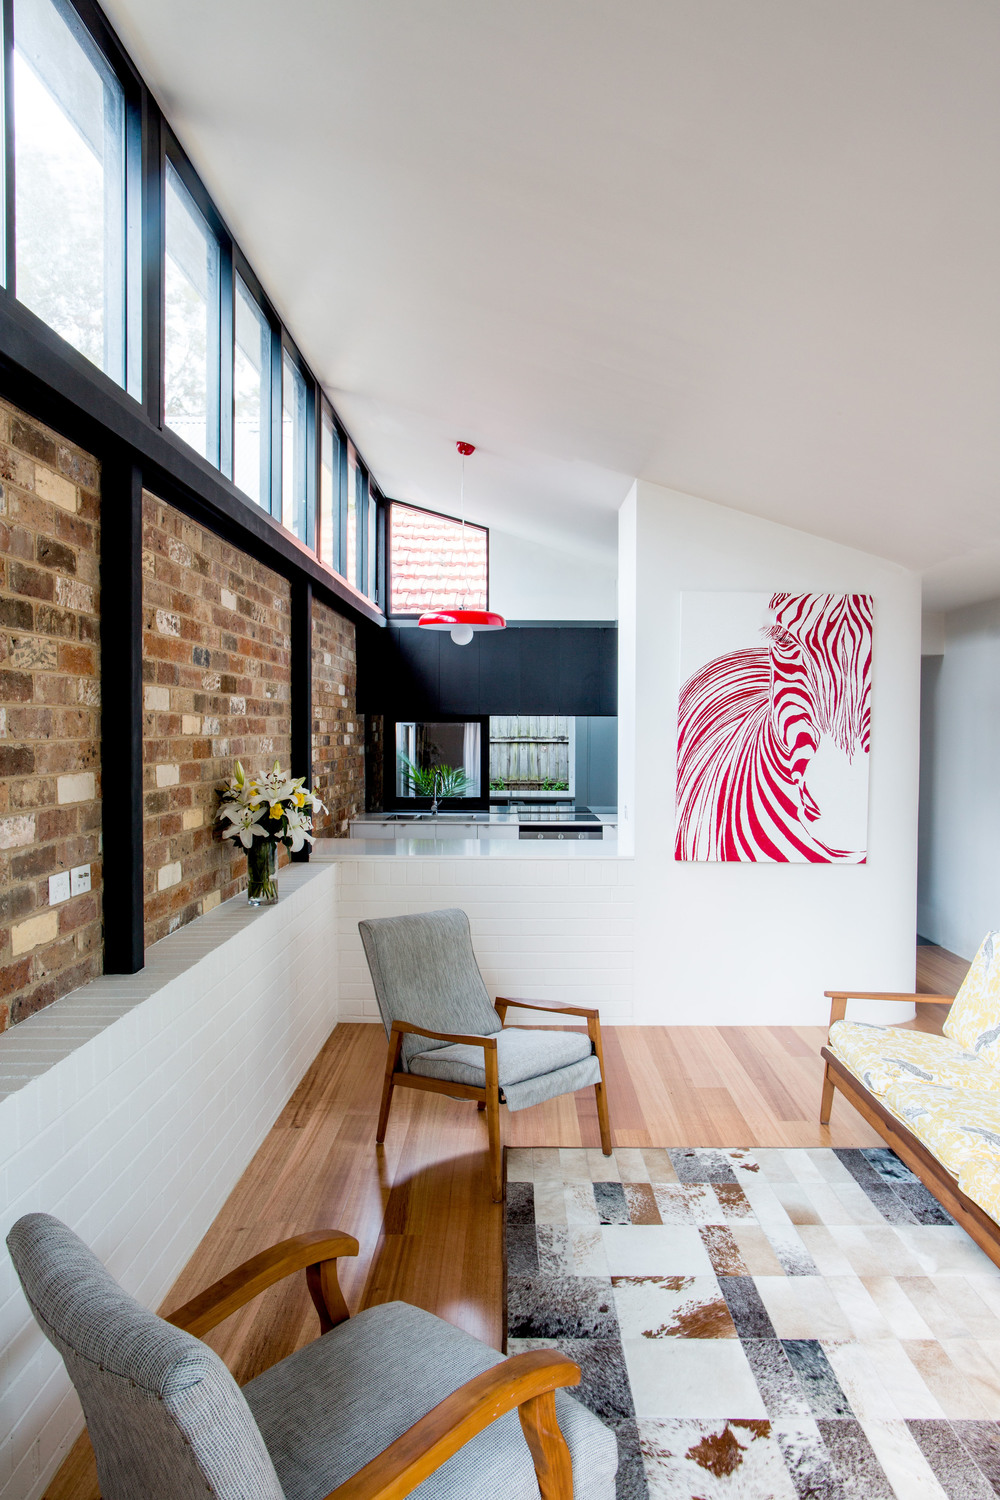 Reclaimed Bricks Provide Warmth and Solidity to Otherwise Light Home